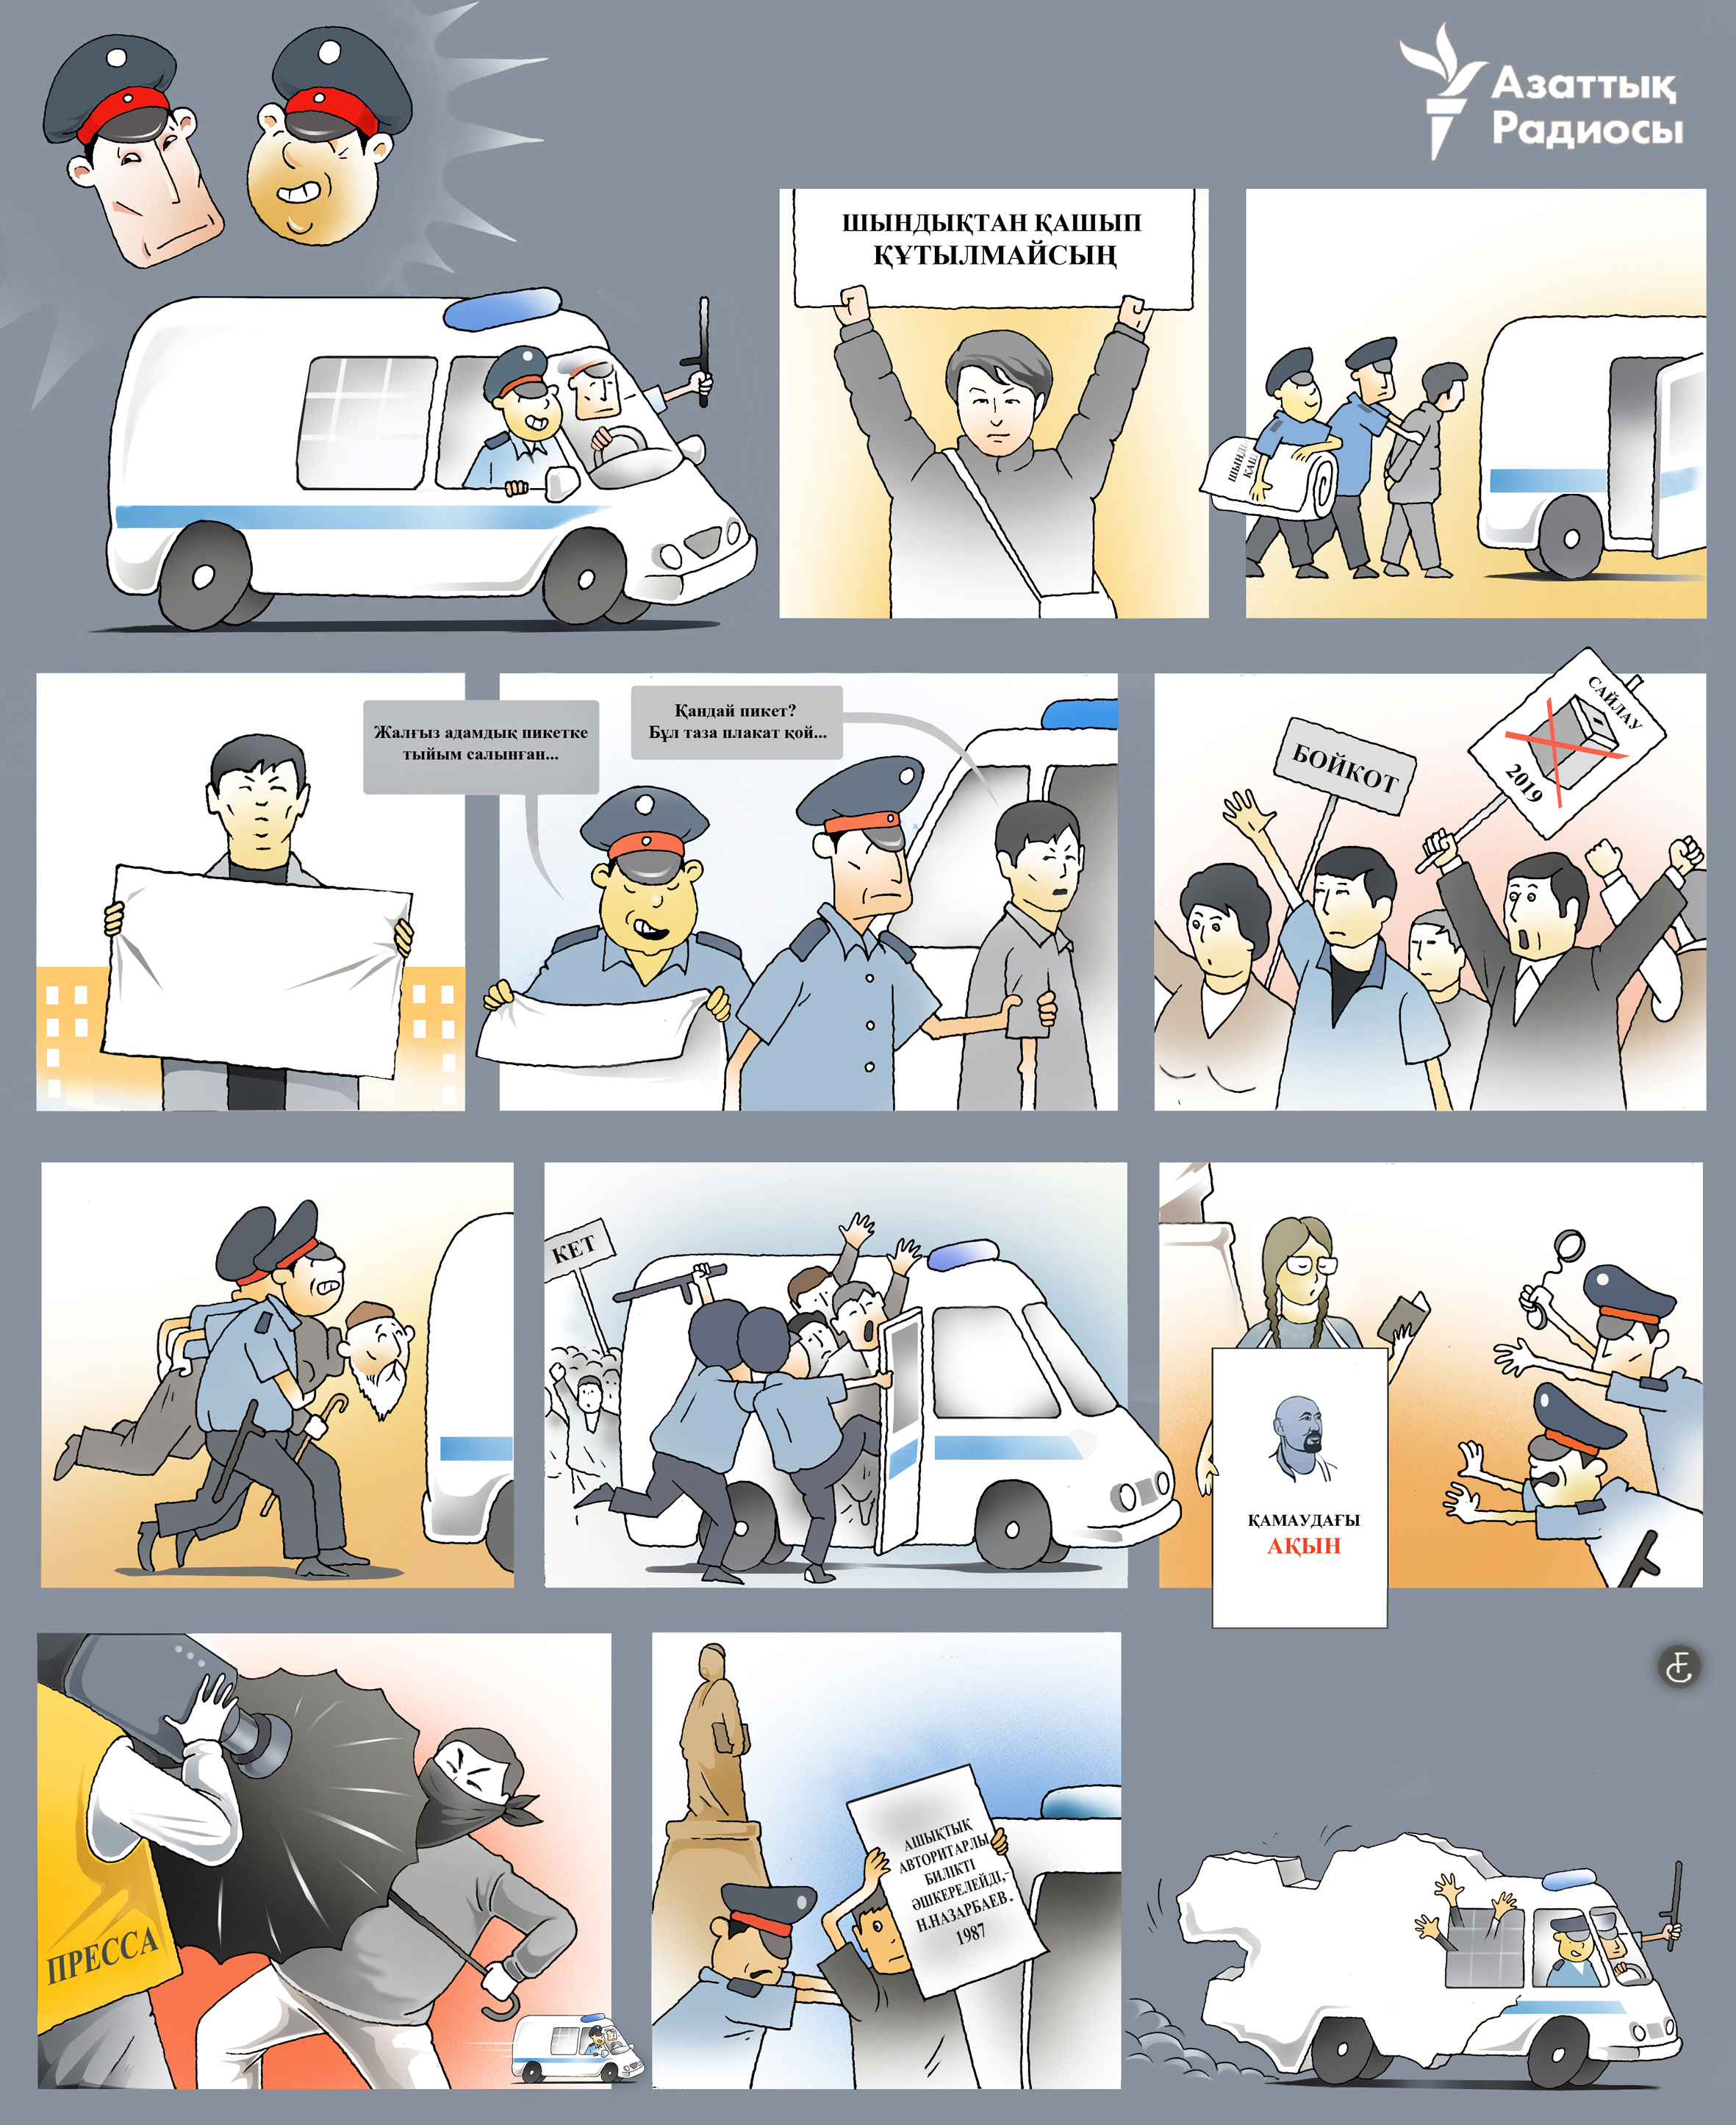 infographic about police